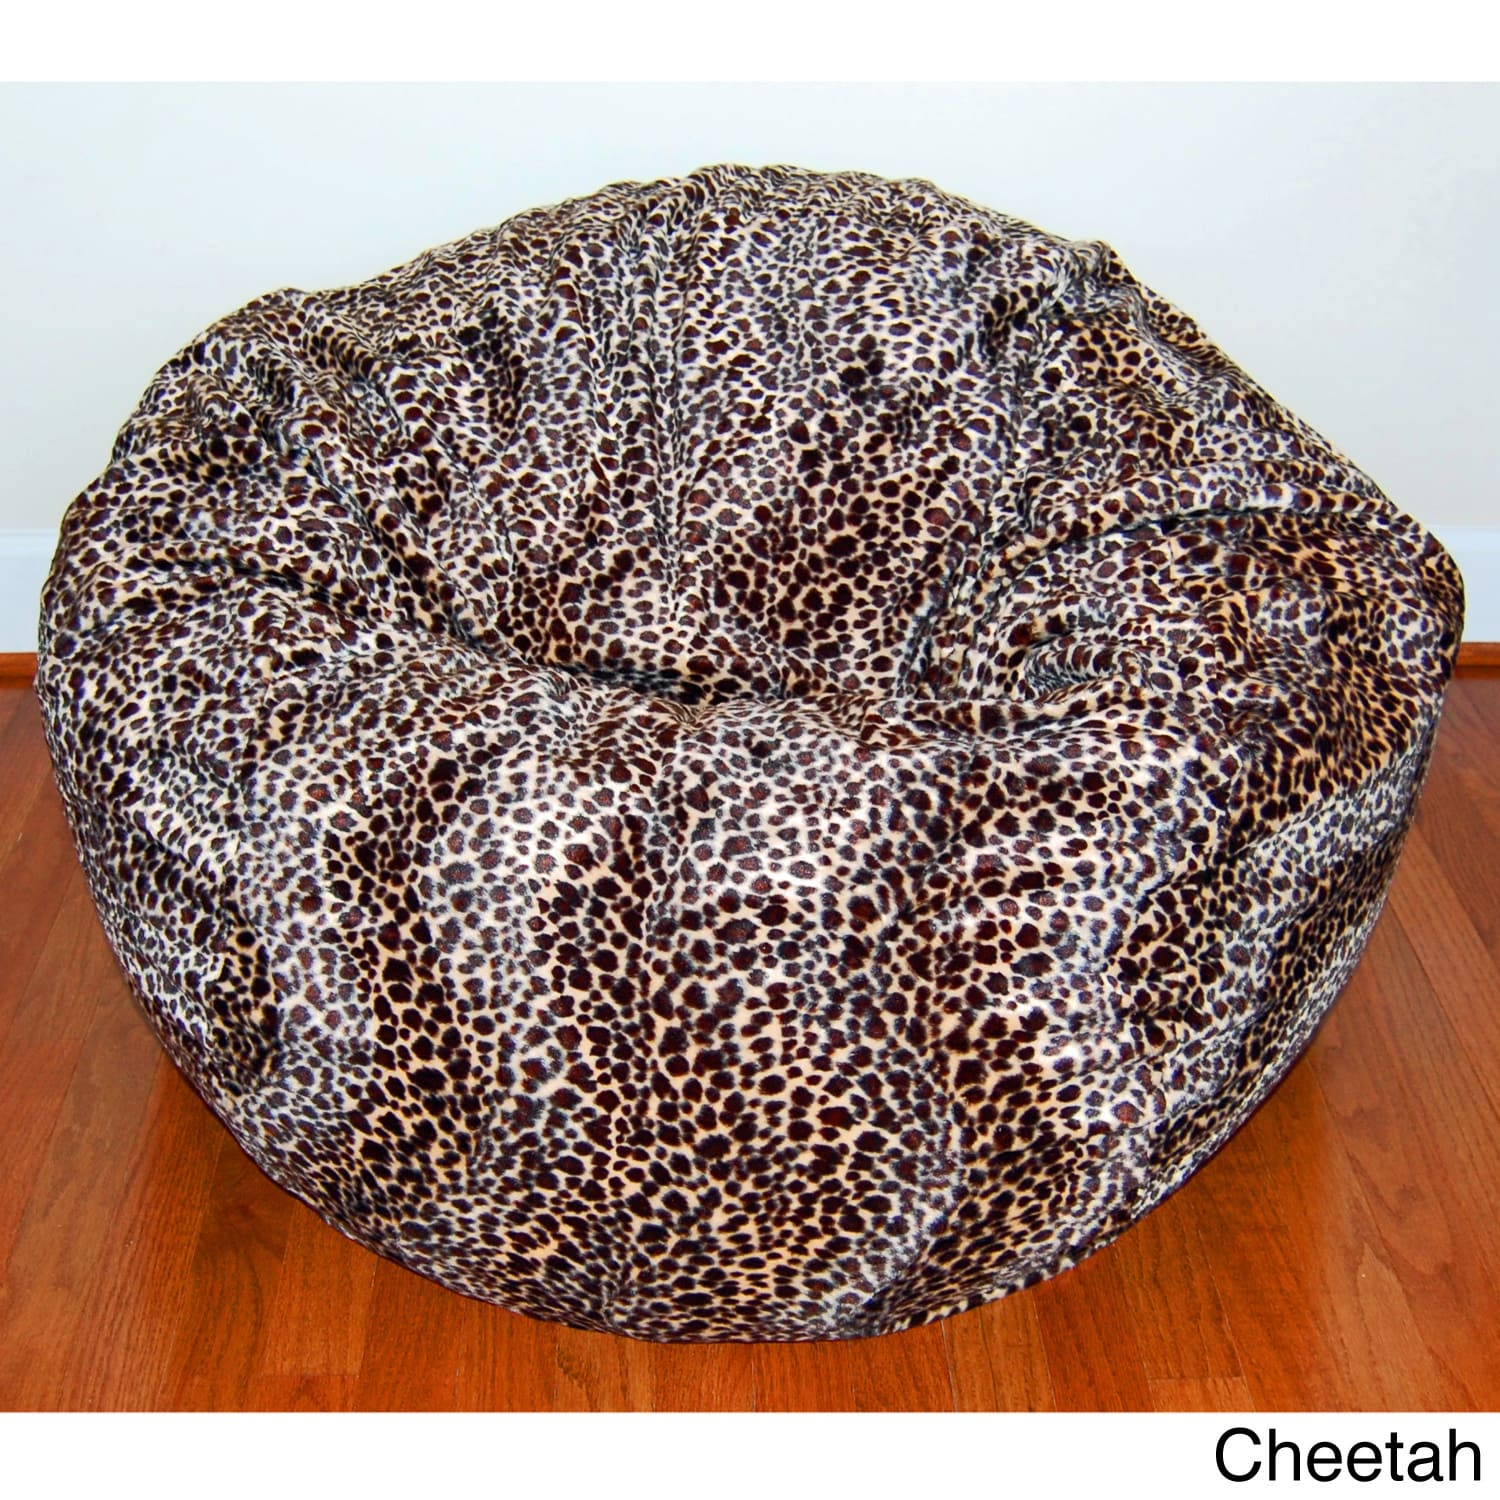 cheetah print bean bag chair electric execution footage ahh products 36 quotwide washable l